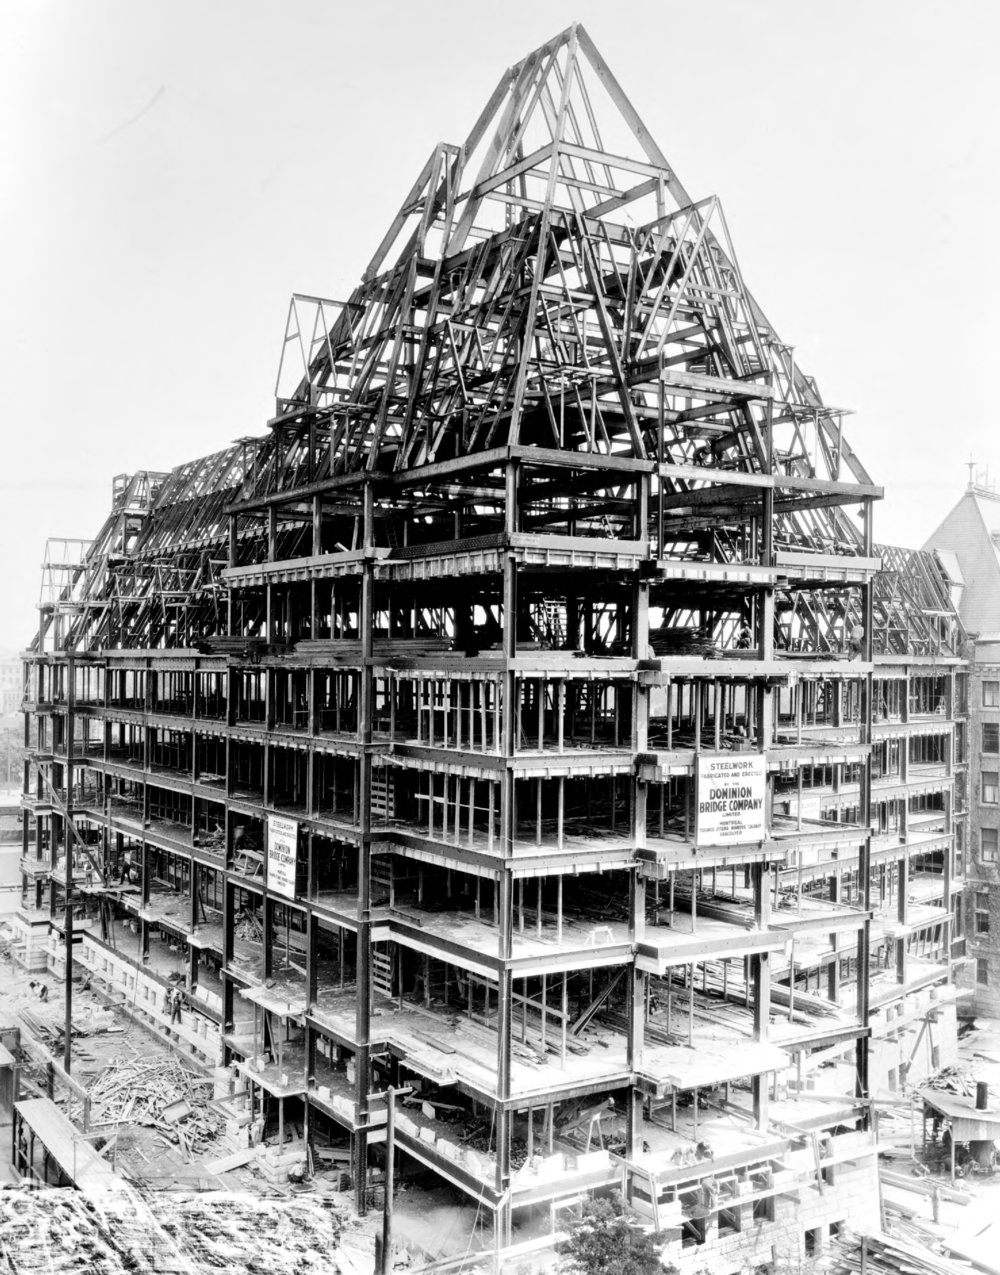 Construction of the Humboldt Street wing of the Empress Hotel. Image G-03999 courtesy of the Royal BC Museum and Archives.